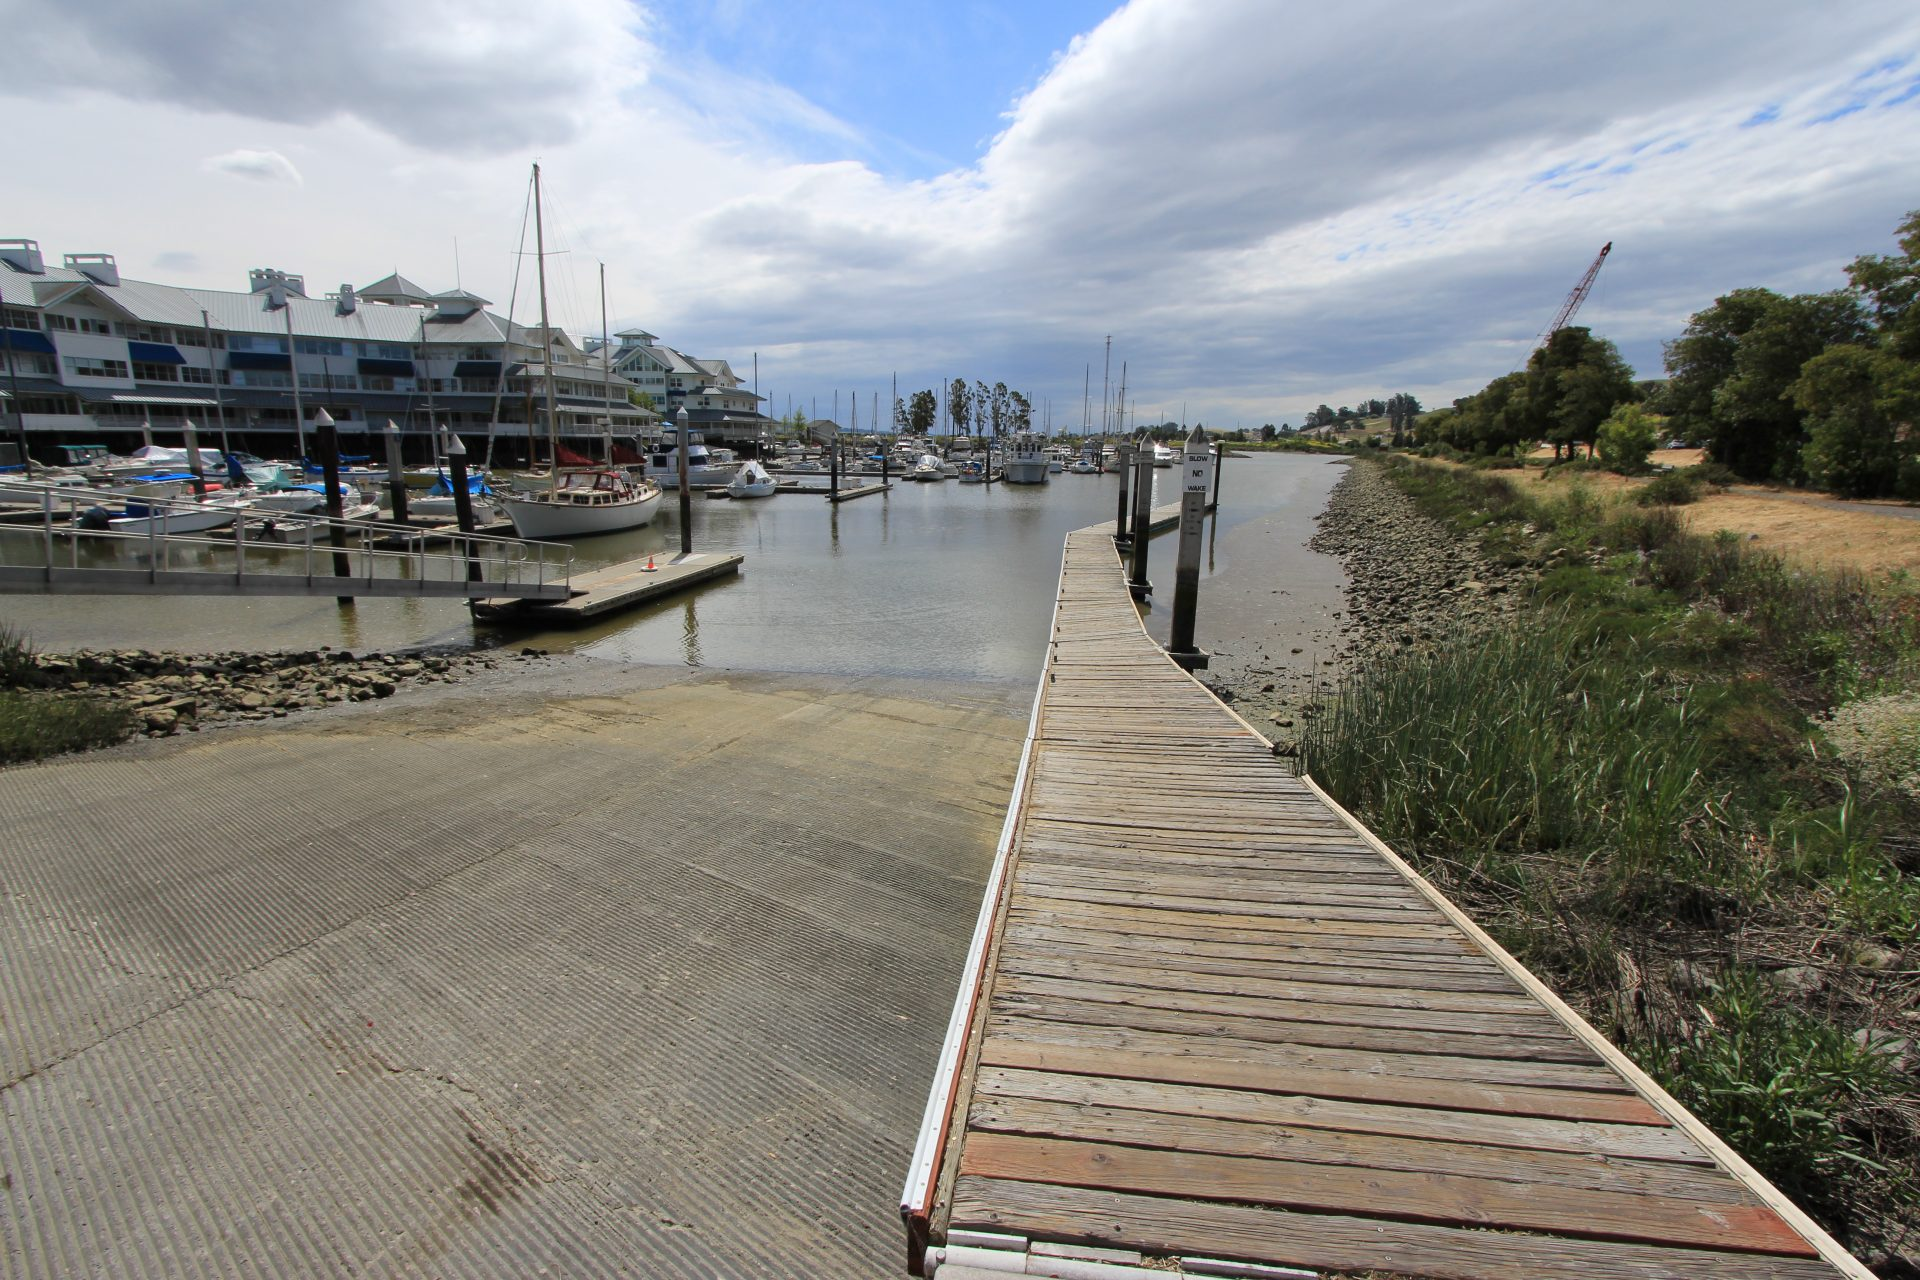 Looking down pathway next to boat ramp, toward water